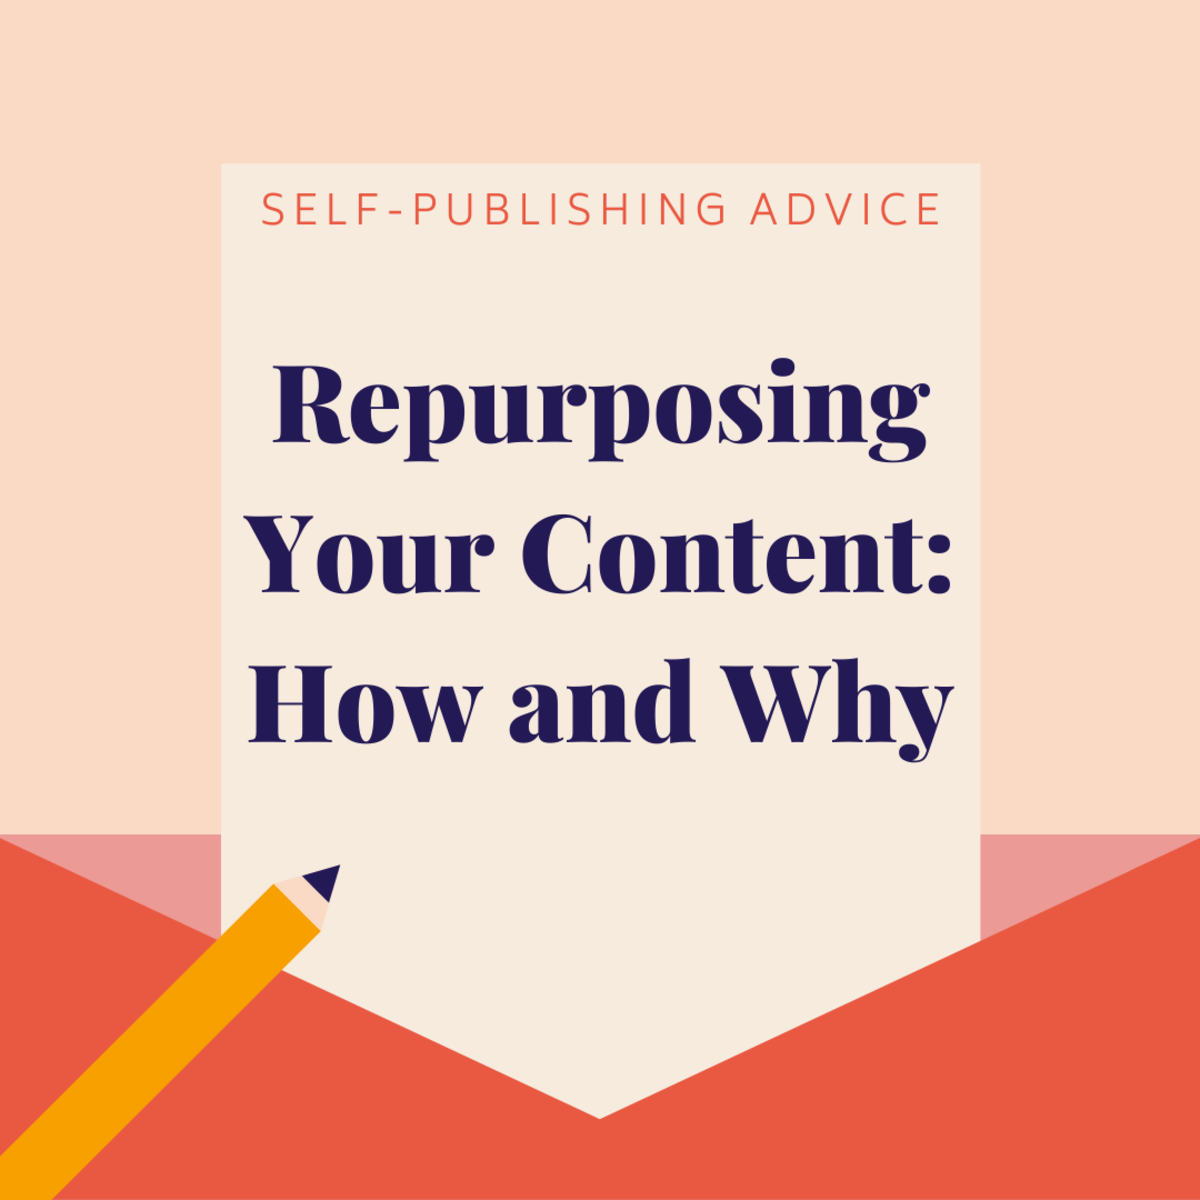 How to Repurpose Content to Make More Money From Writing